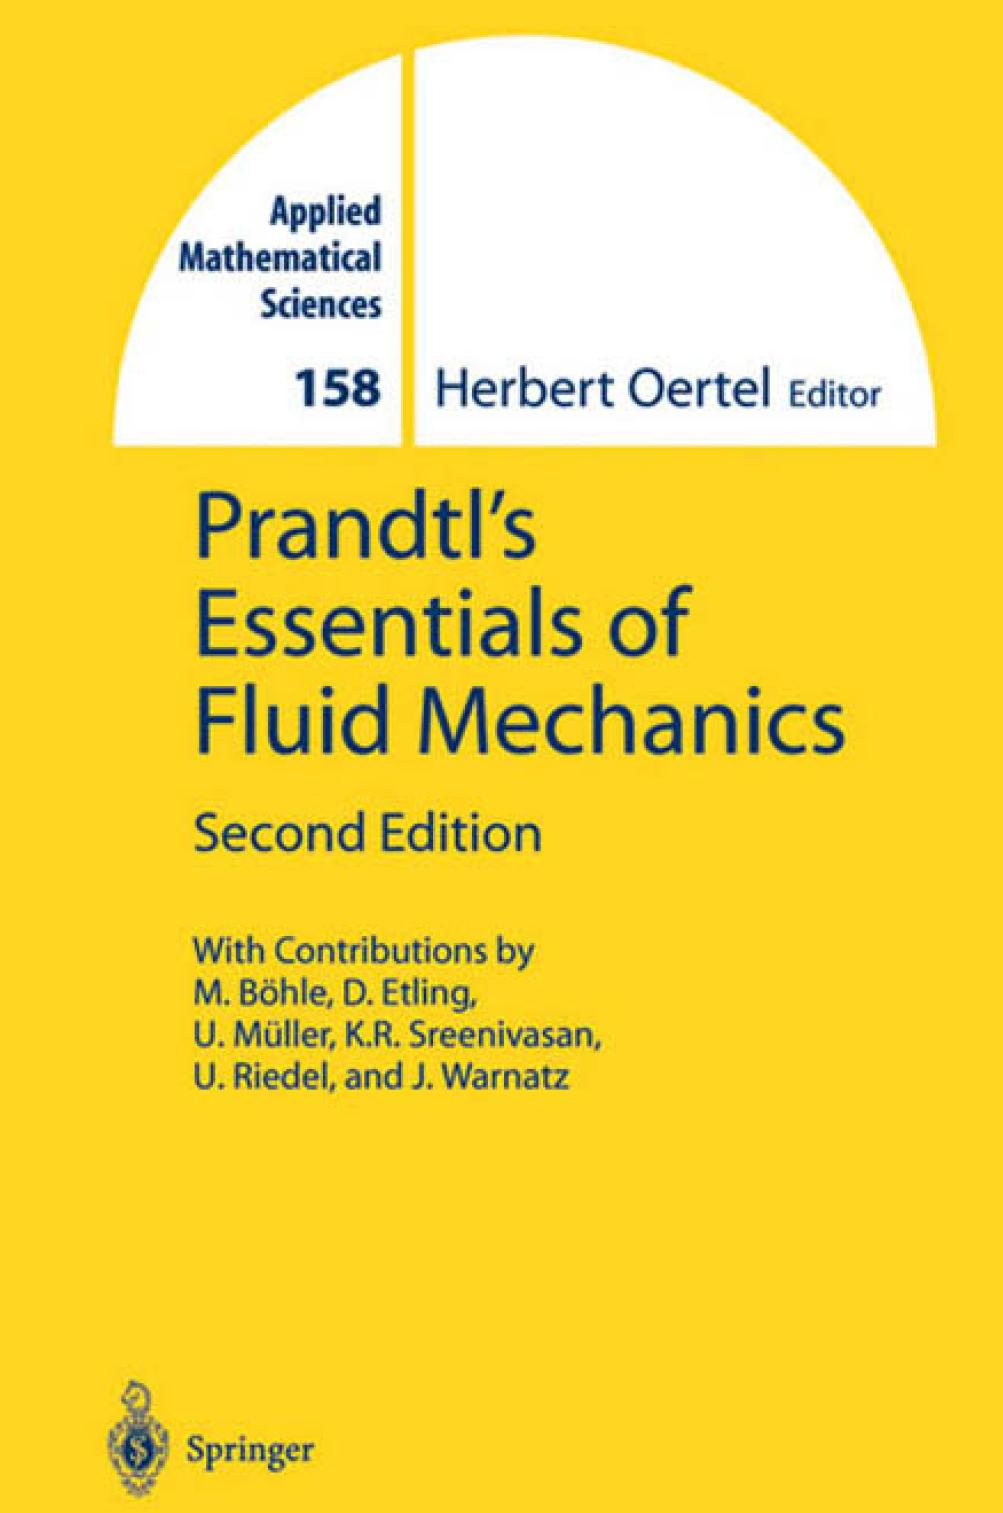 Essentials of Fluid Mechanics - Herbert Oertel